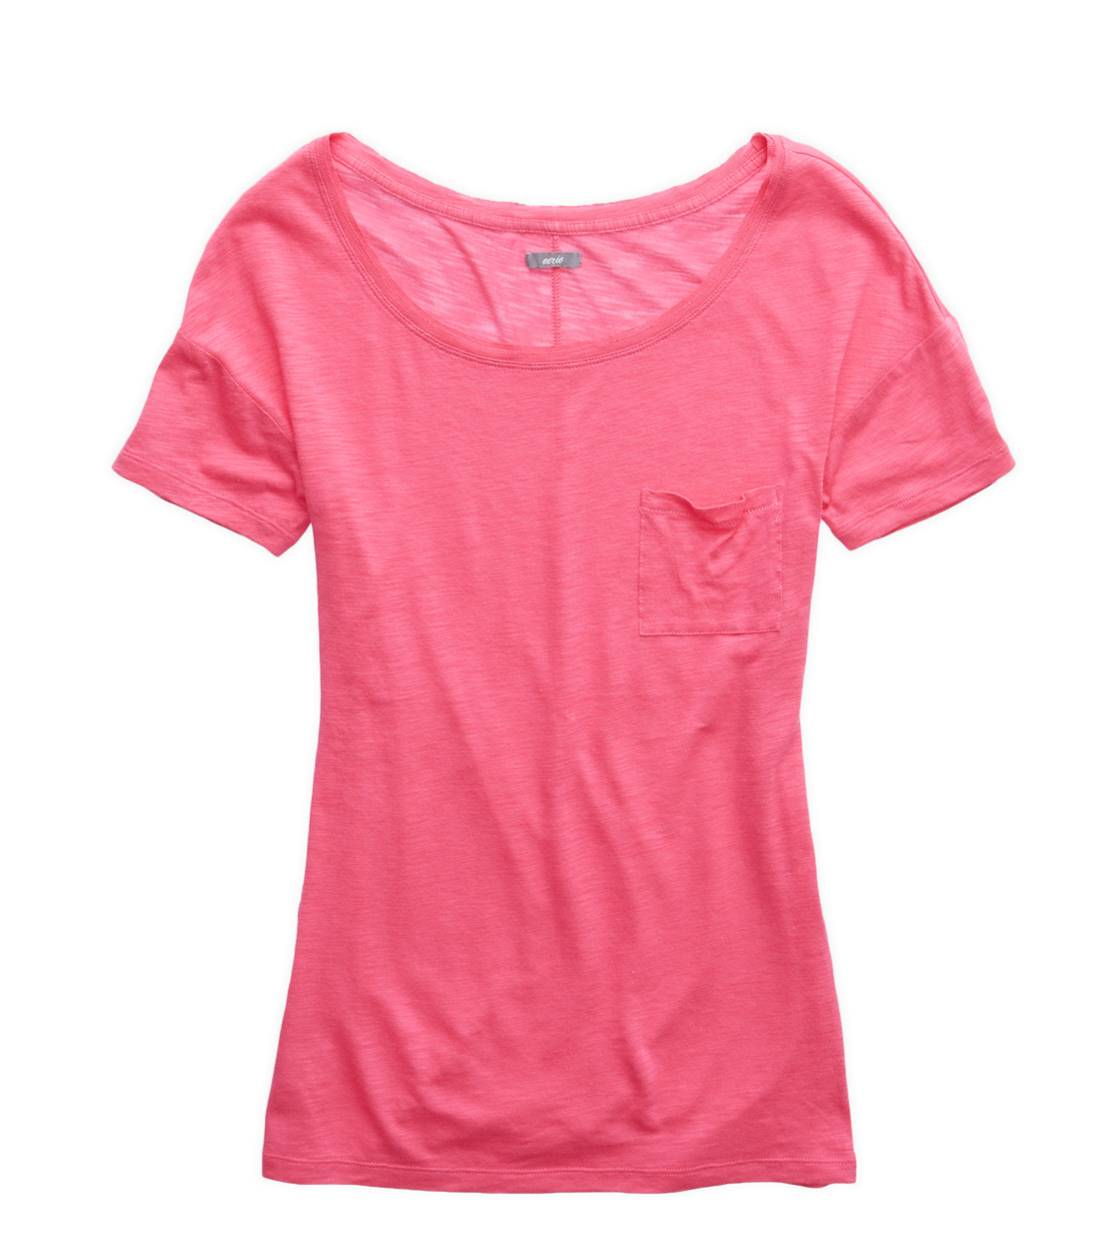 Sweetheart Aerie Slim Fit Pocket T-Shirt